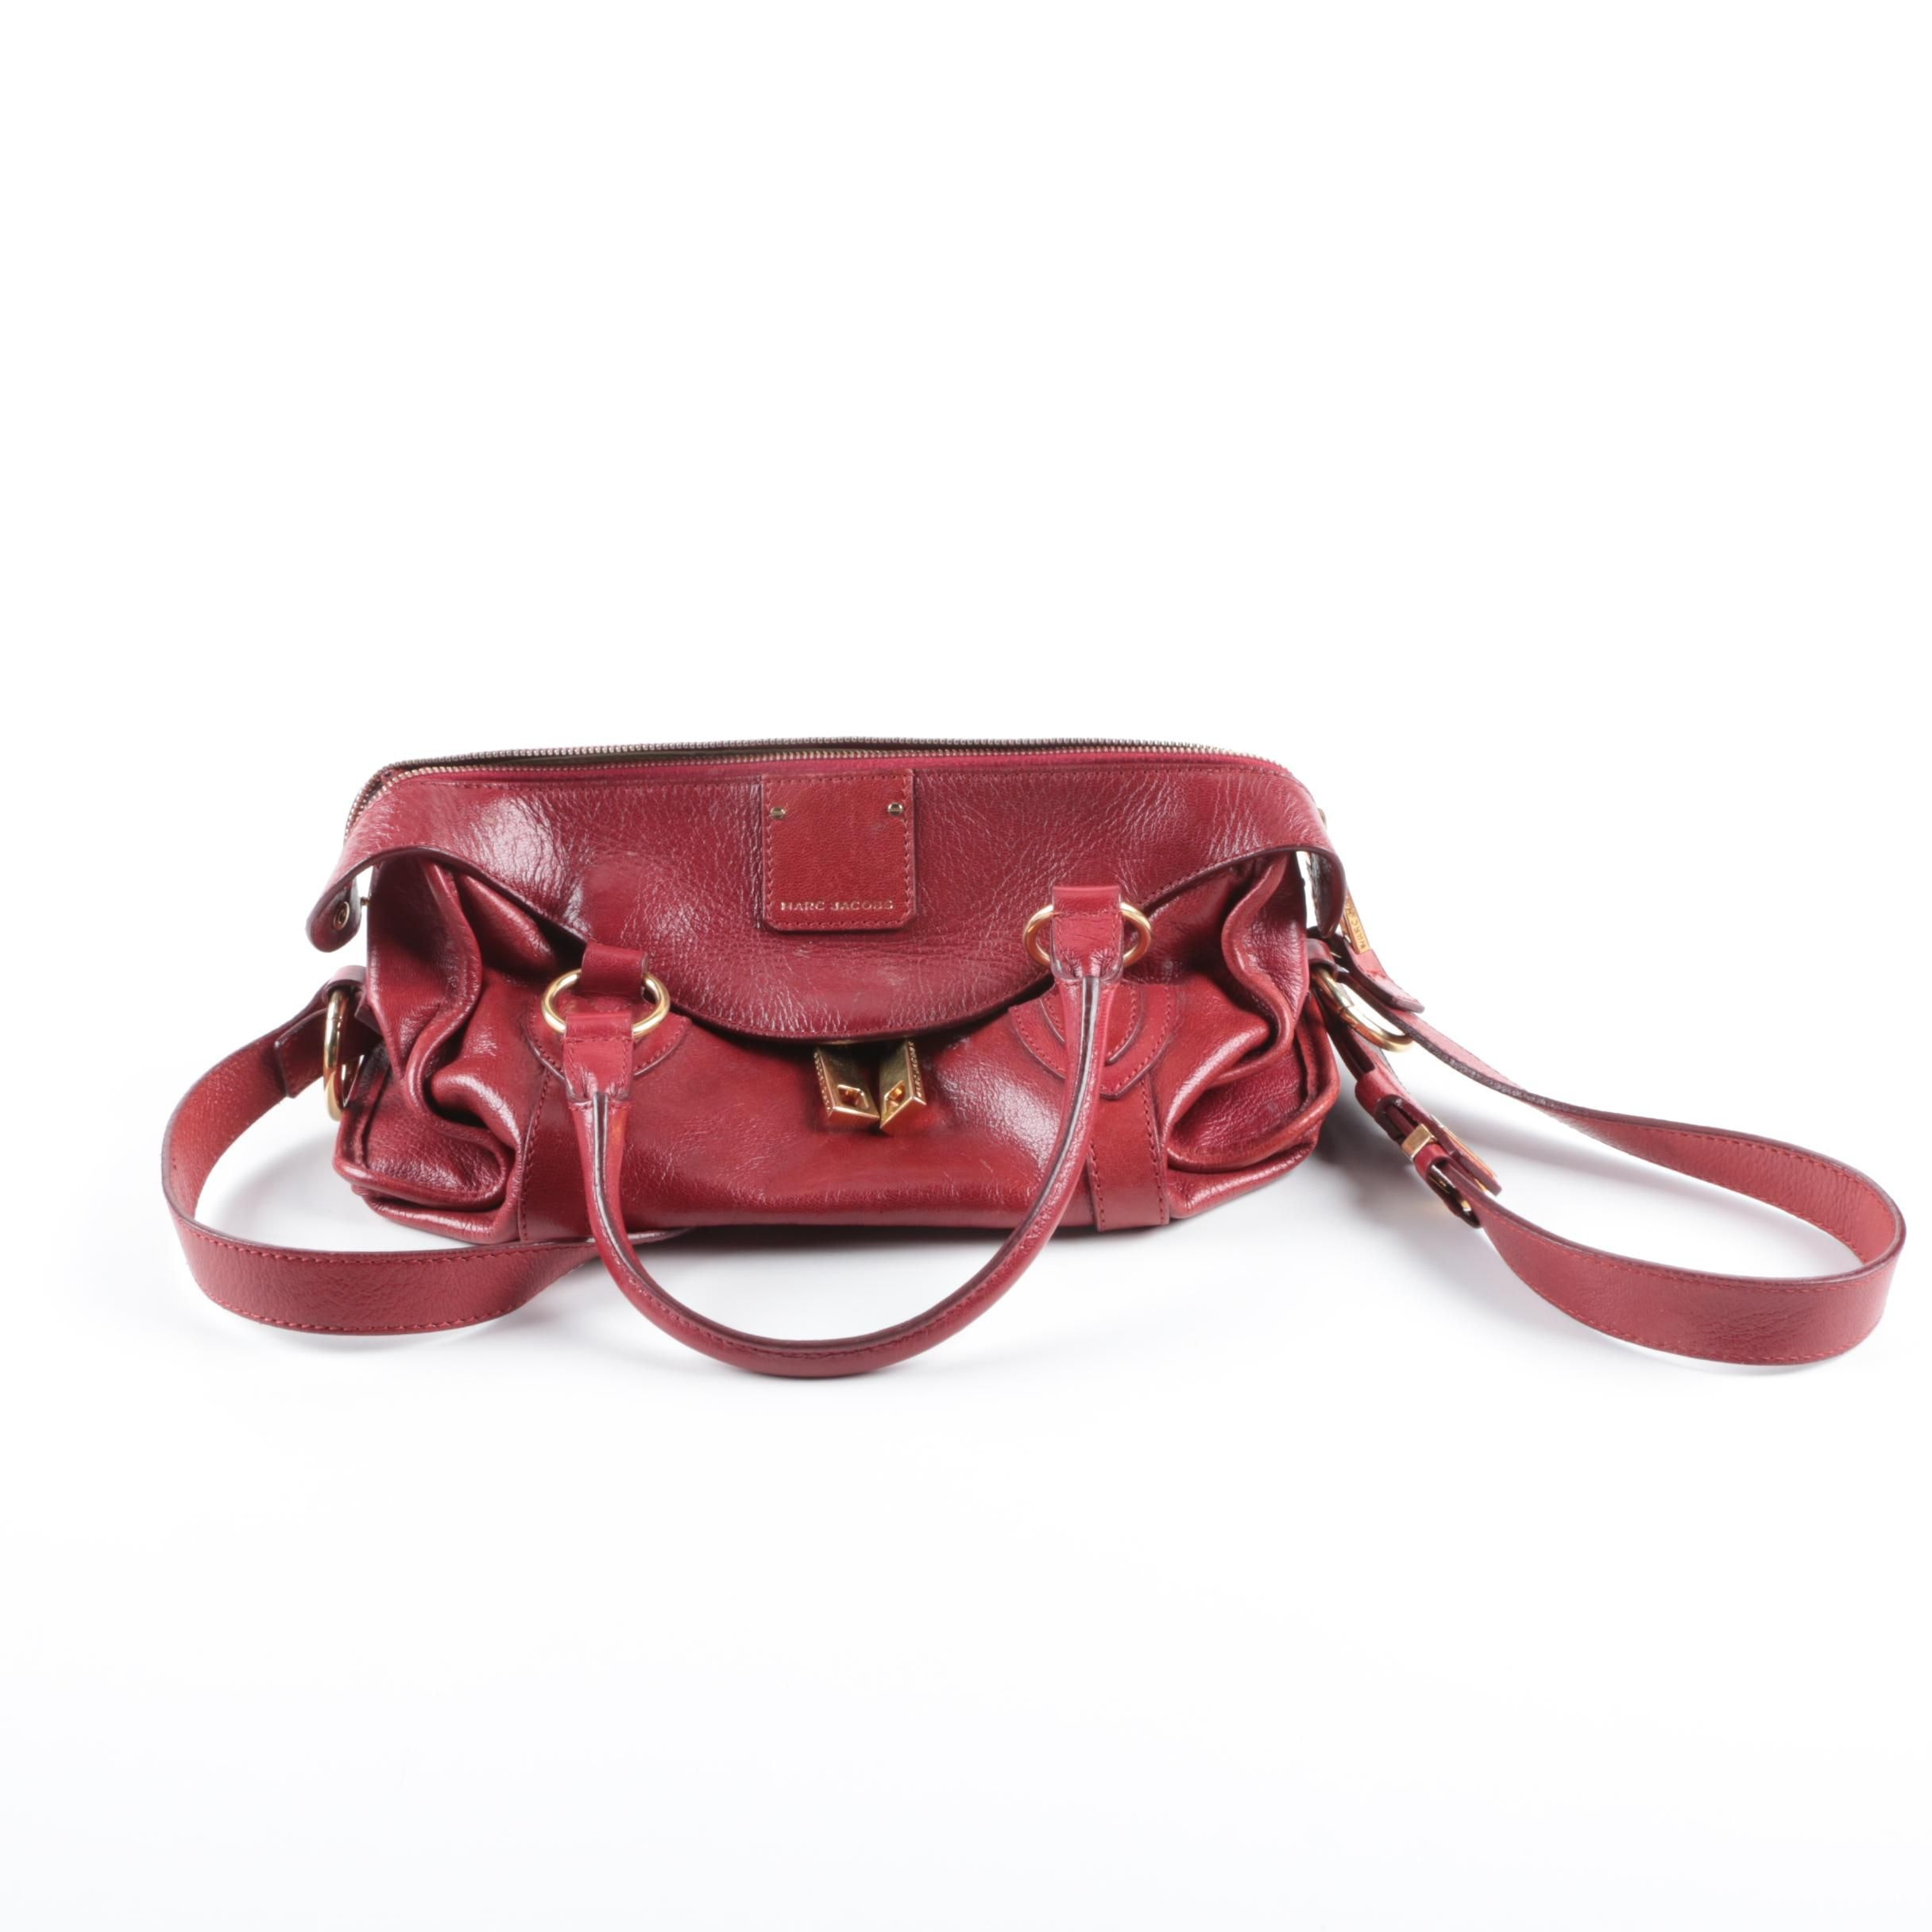 Marc Jacobs Red Leather Convertible Handbag